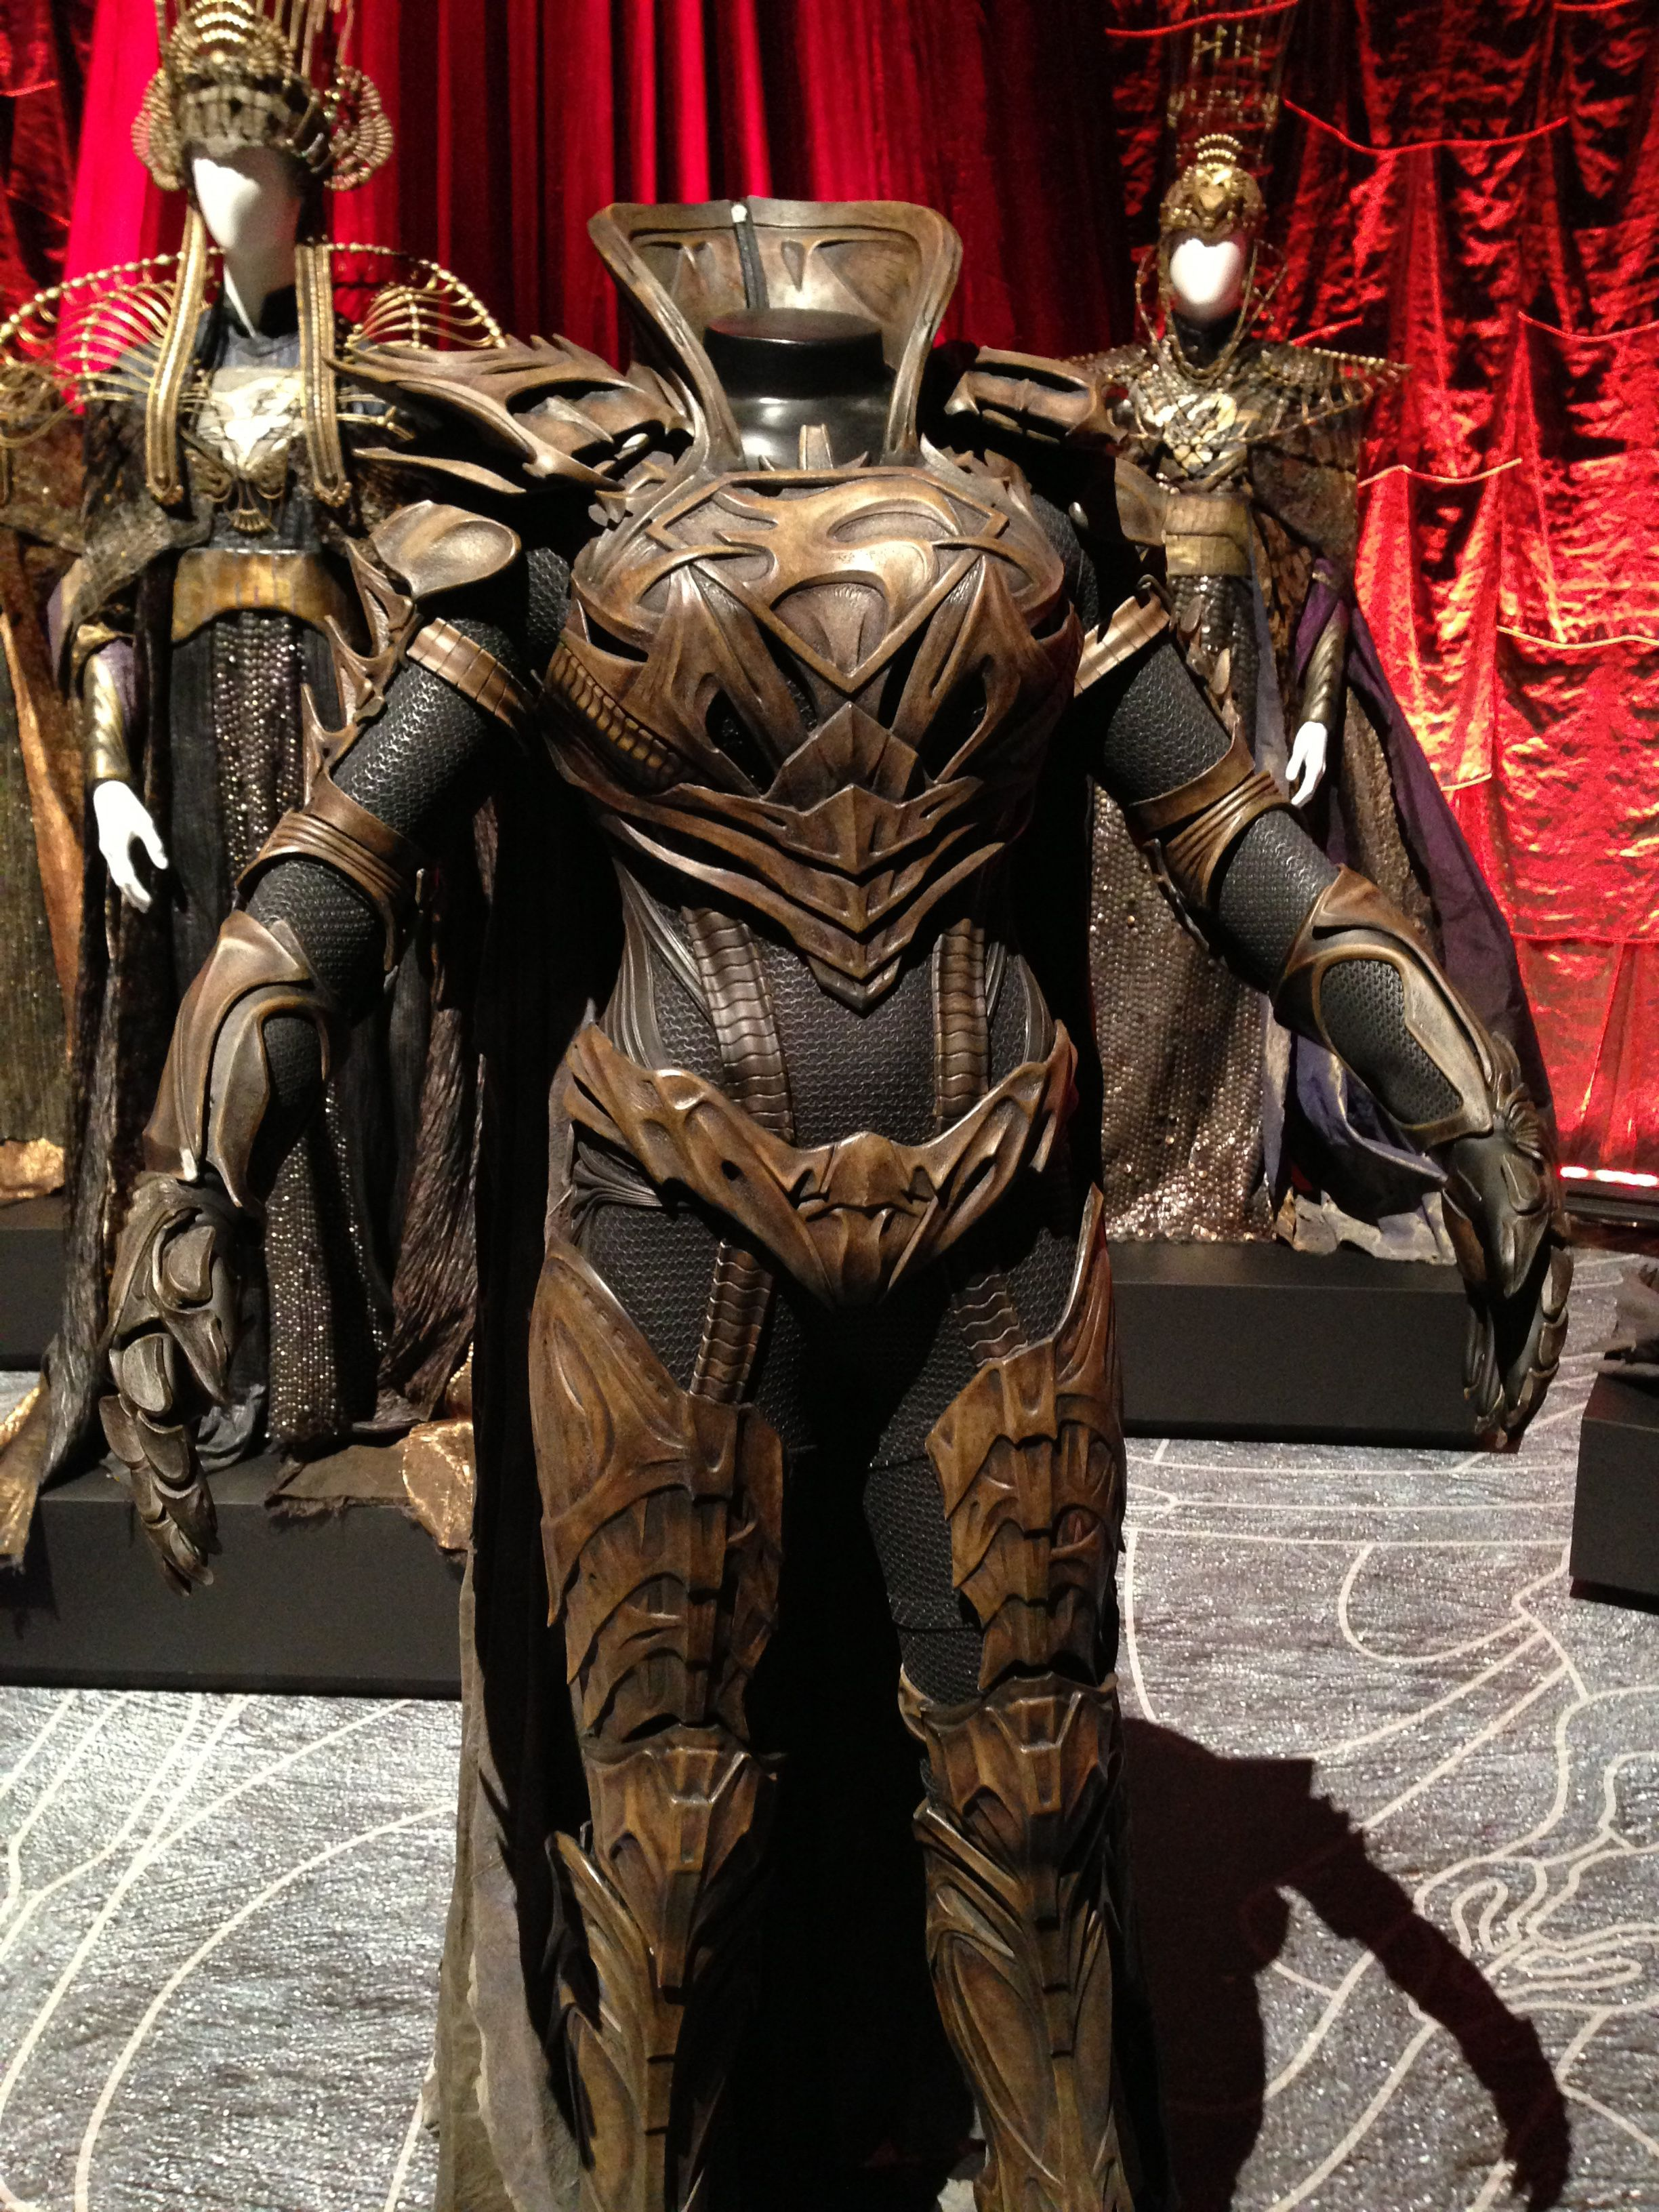 Faora-Ul armor -- You know you're not getting any when she wears this to bed!